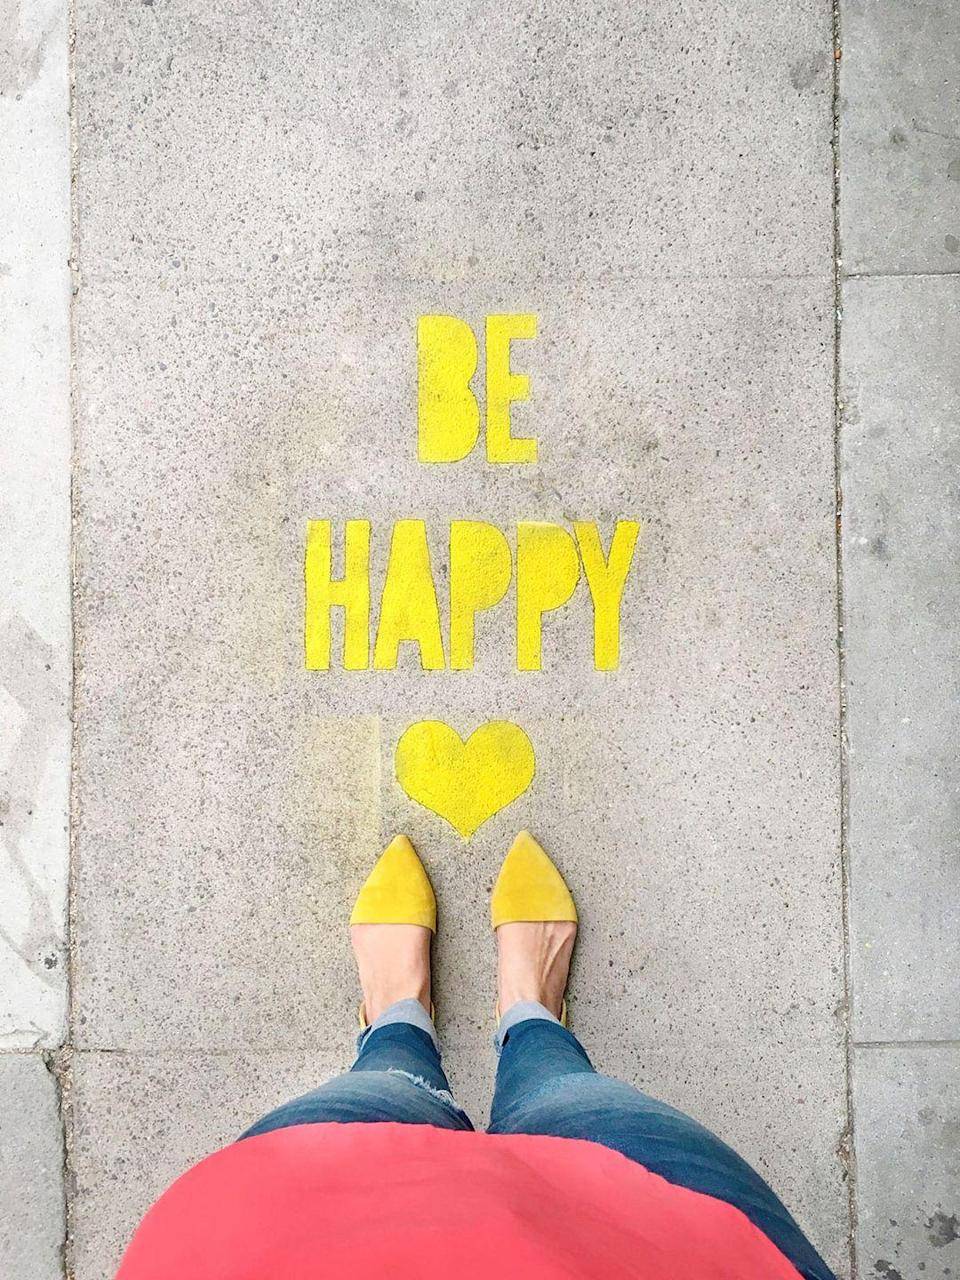 """<p>Buy or make stencils bearing cheerful or inspiring messages to serve as fun — even moving — affirmations for all who pass by. Think """"Be You"""" or """"Be Happy"""" — or whatever feels right.</p><p><em><a href=""""https://lovelyindeed.com/diy-stencil-spray-chalk-sidewalk-messages"""" rel=""""nofollow noopener"""" target=""""_blank"""" data-ylk=""""slk:Get the tutorial from Lovely Indeed »"""" class=""""link rapid-noclick-resp"""">Get the tutorial from Lovely Indeed »</a></em></p>"""